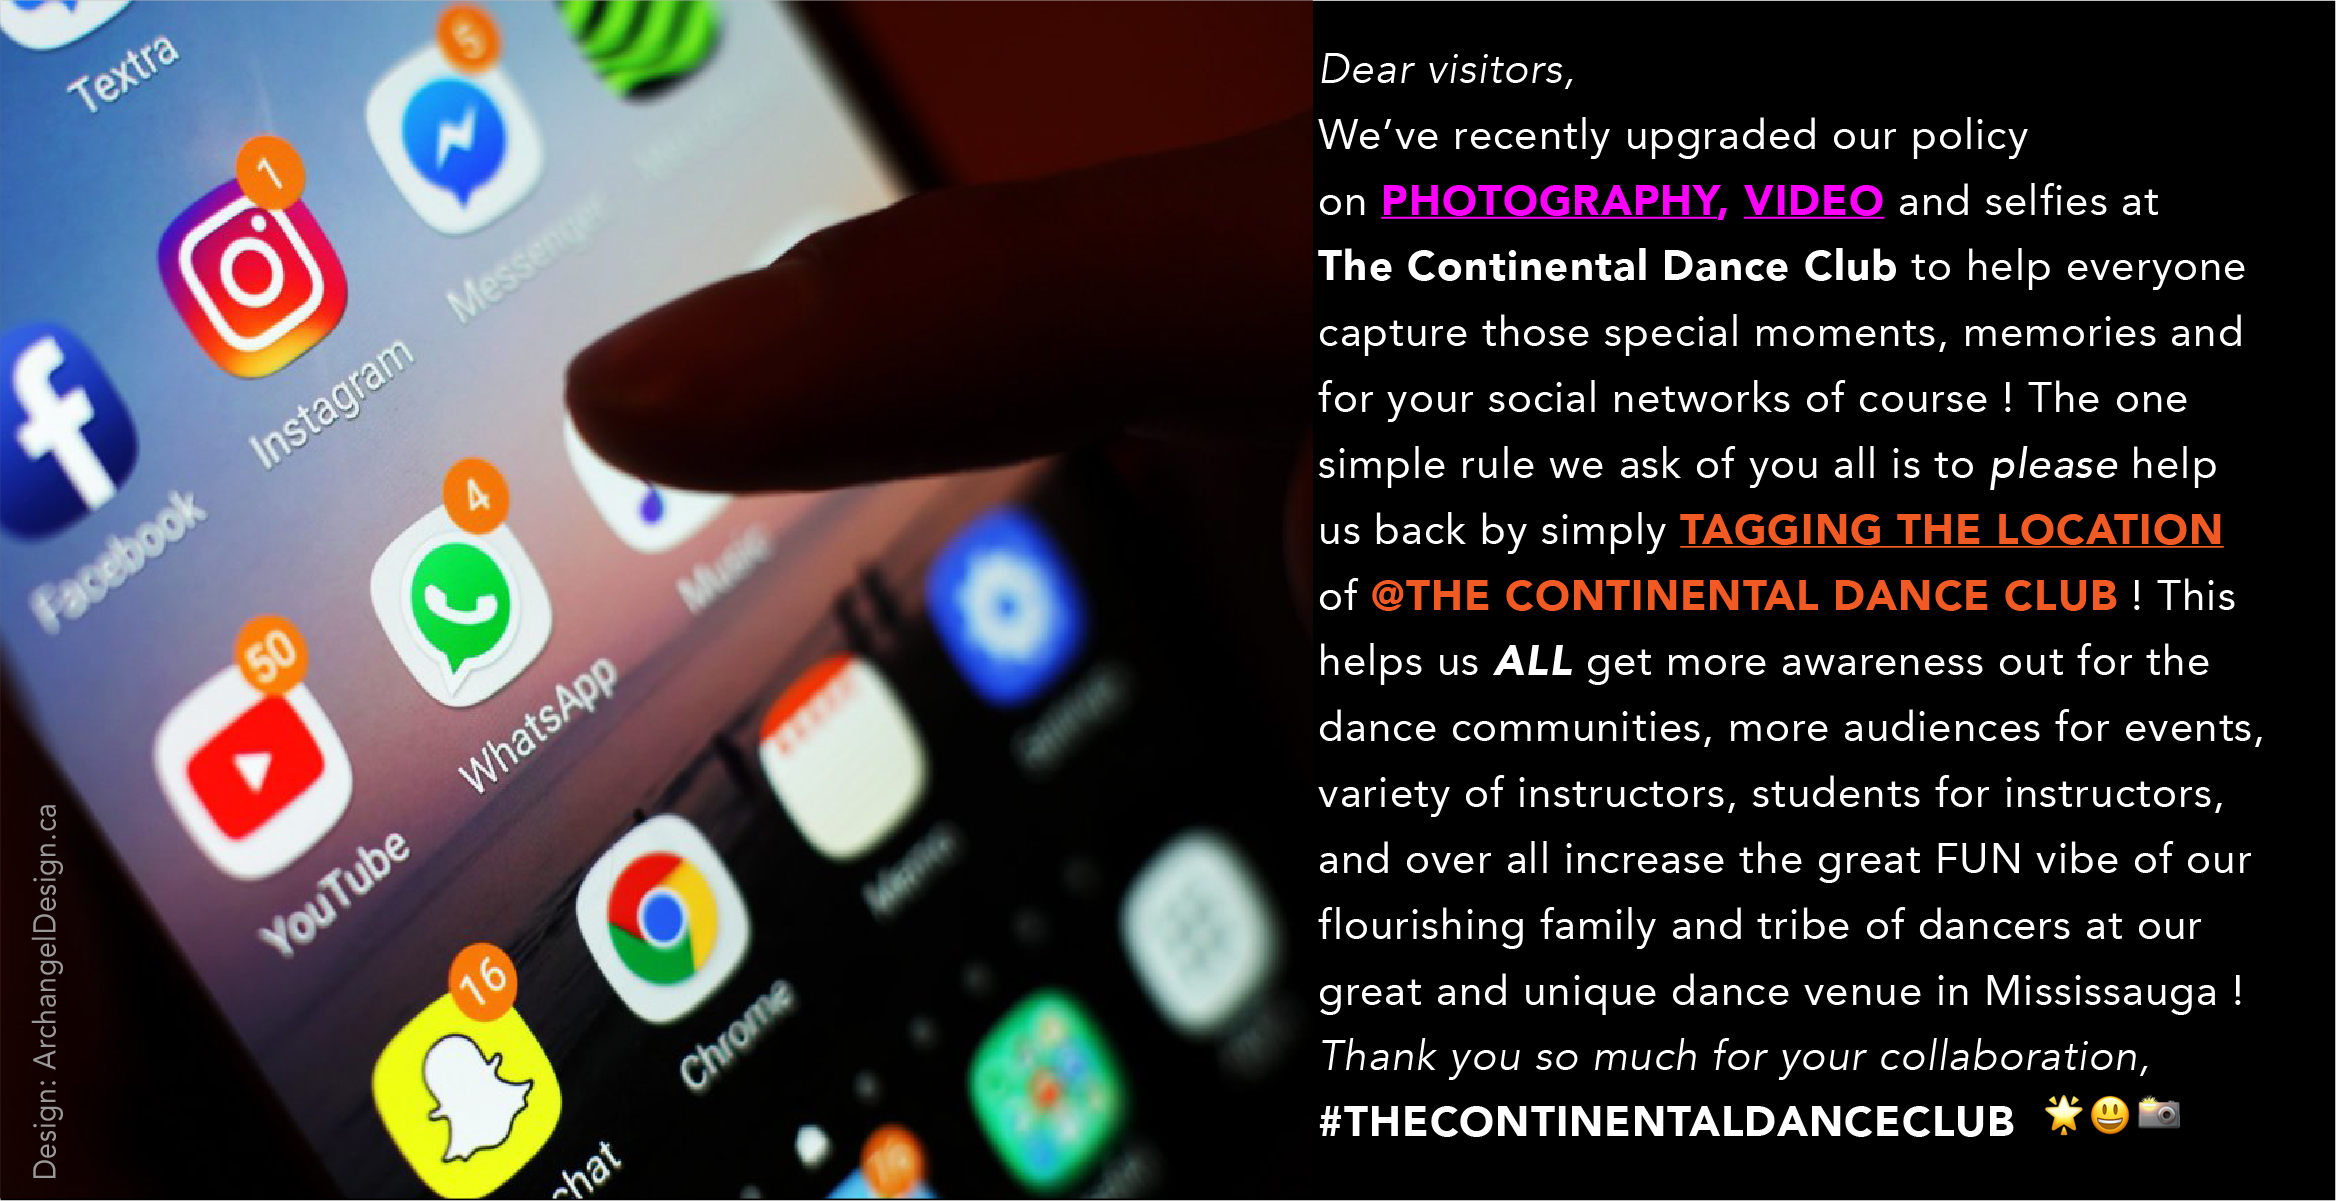 *NEW* PHOTOGRAPHY policy 2019 >>> THANK YOU for TAGging #TheContinentalDanceClub